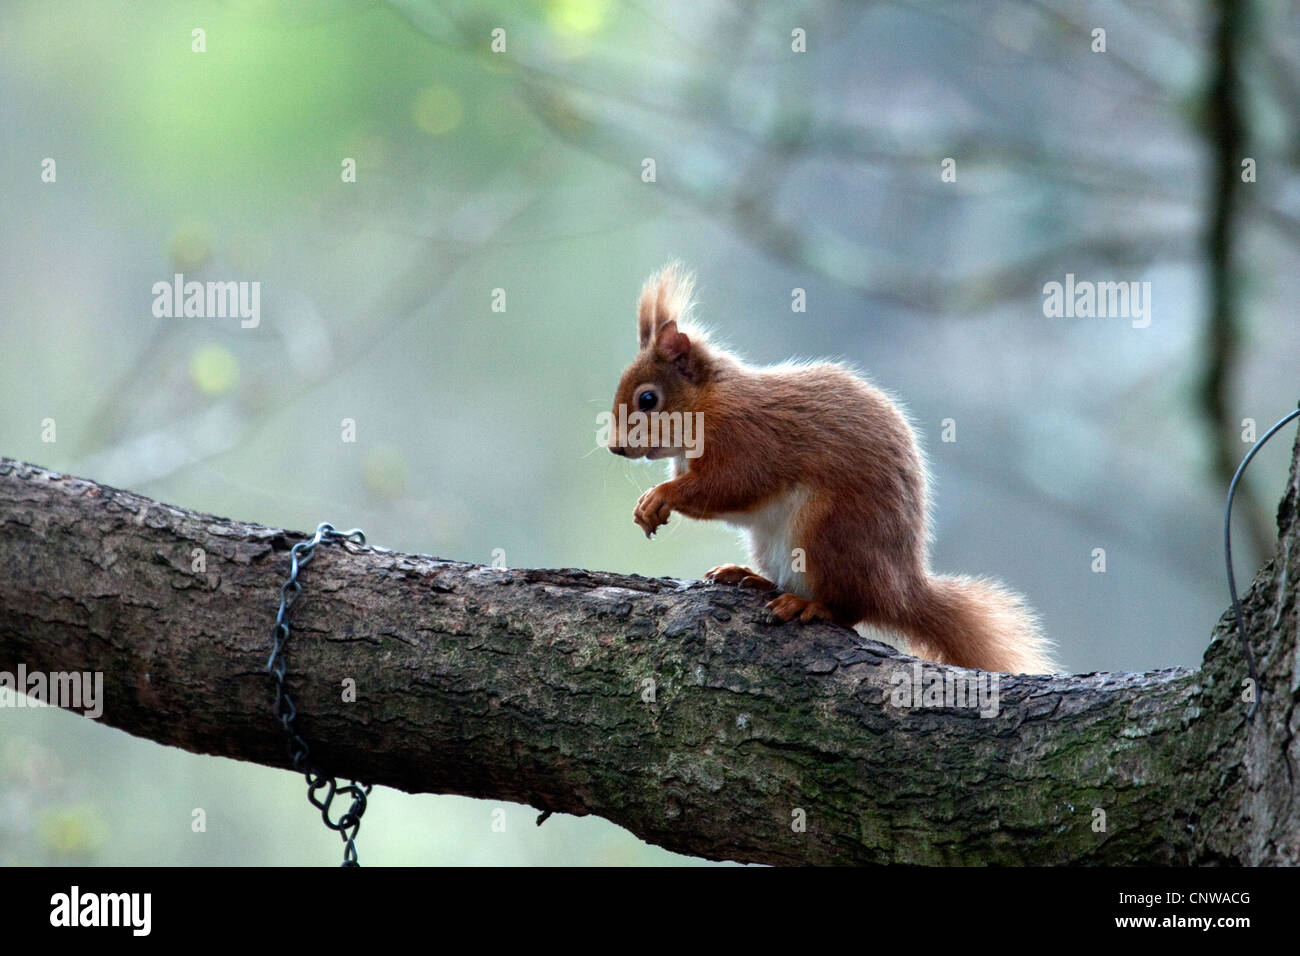 Brownsea Island Red Squirrel Stock Photos & Brownsea Island Red ...